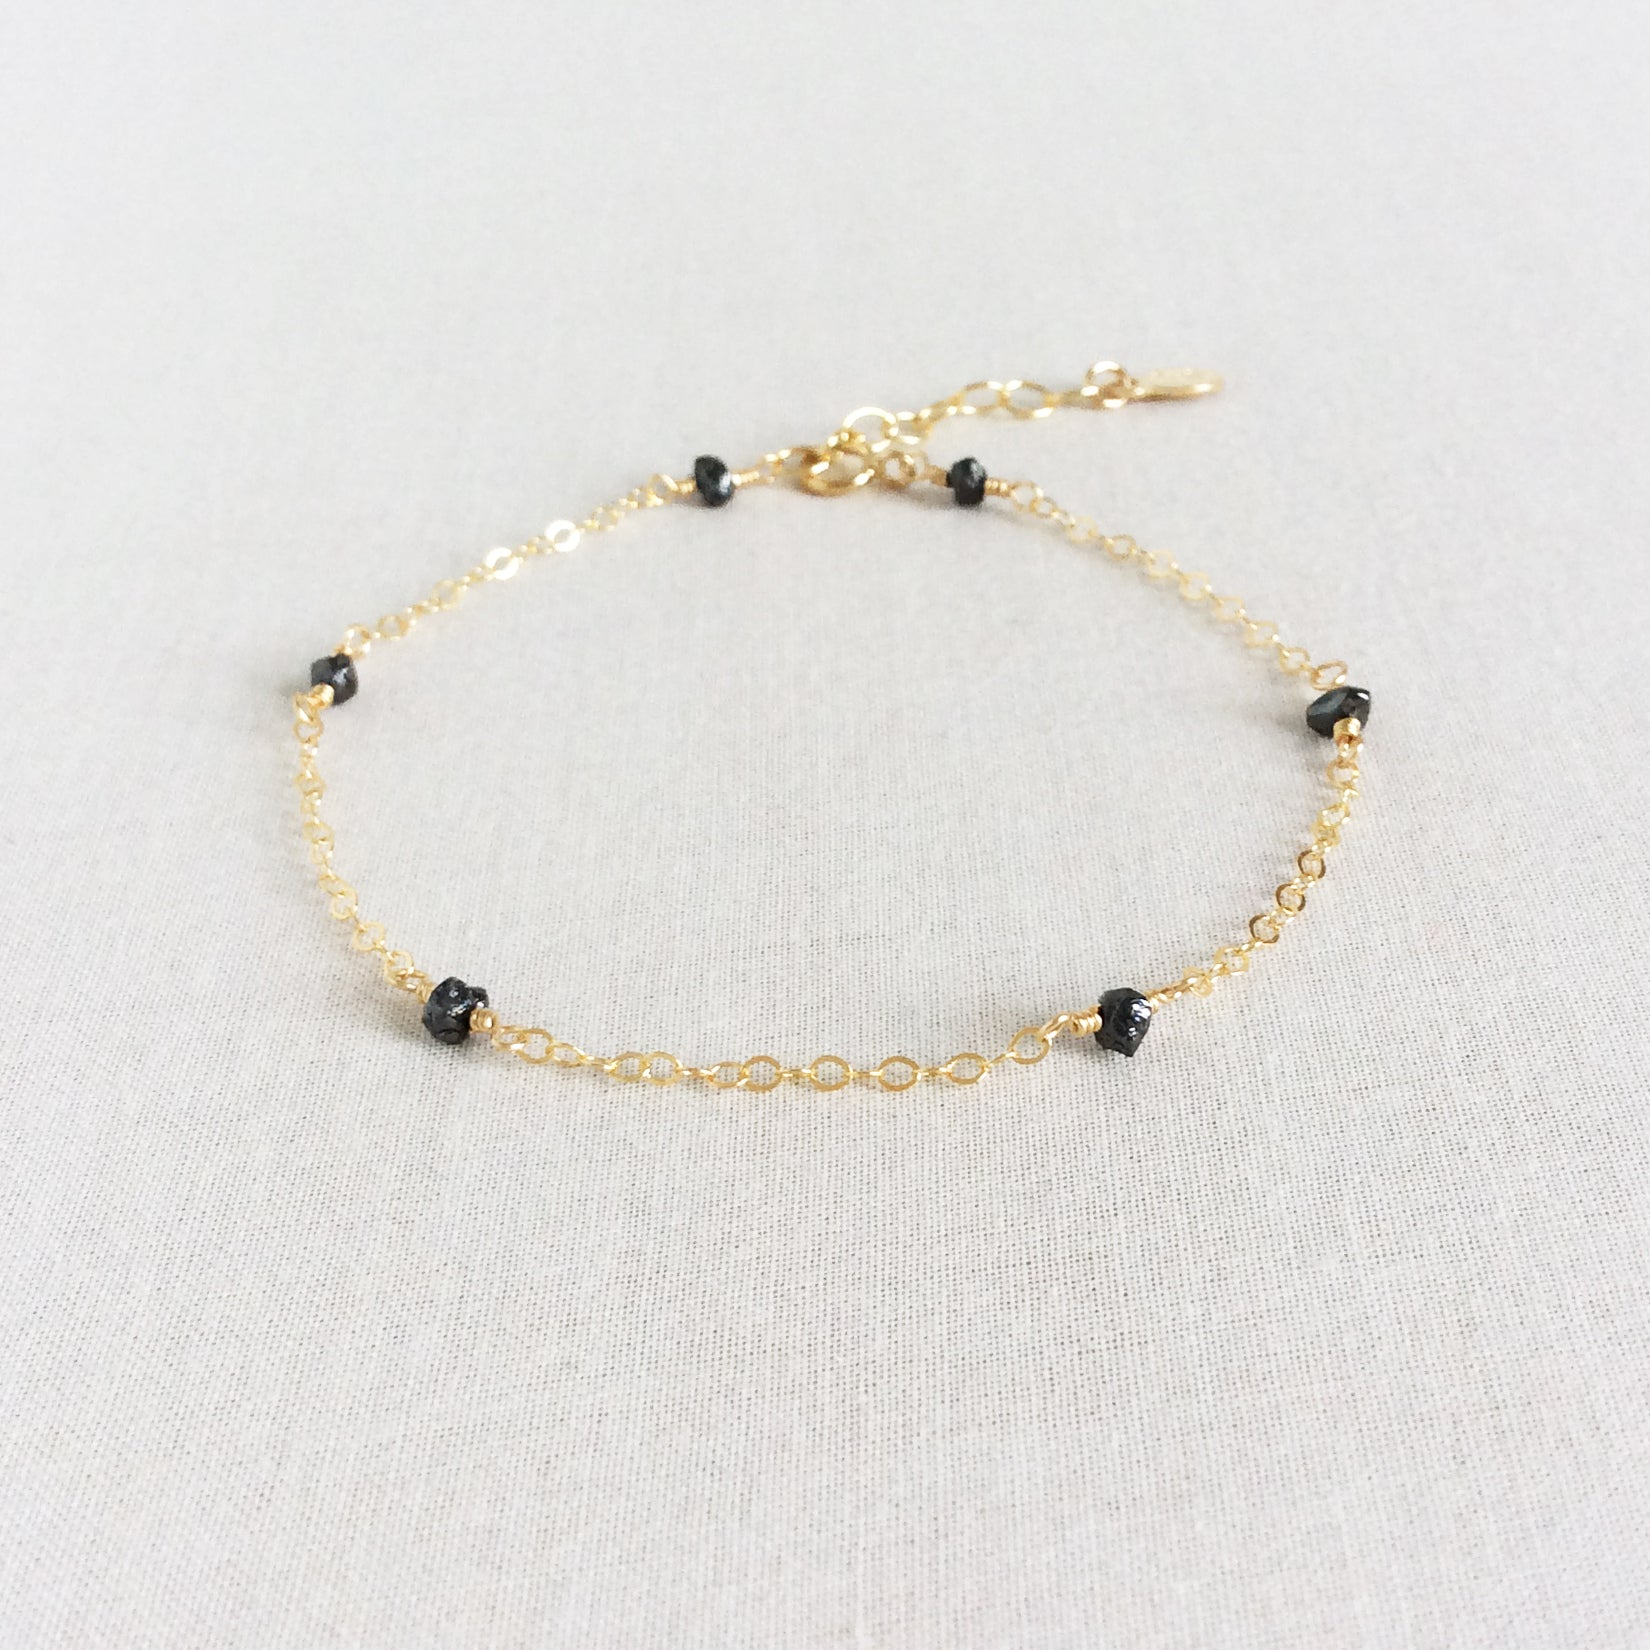 dainty black diamond gold bracelet with adjustable chain in 14k or gold filled